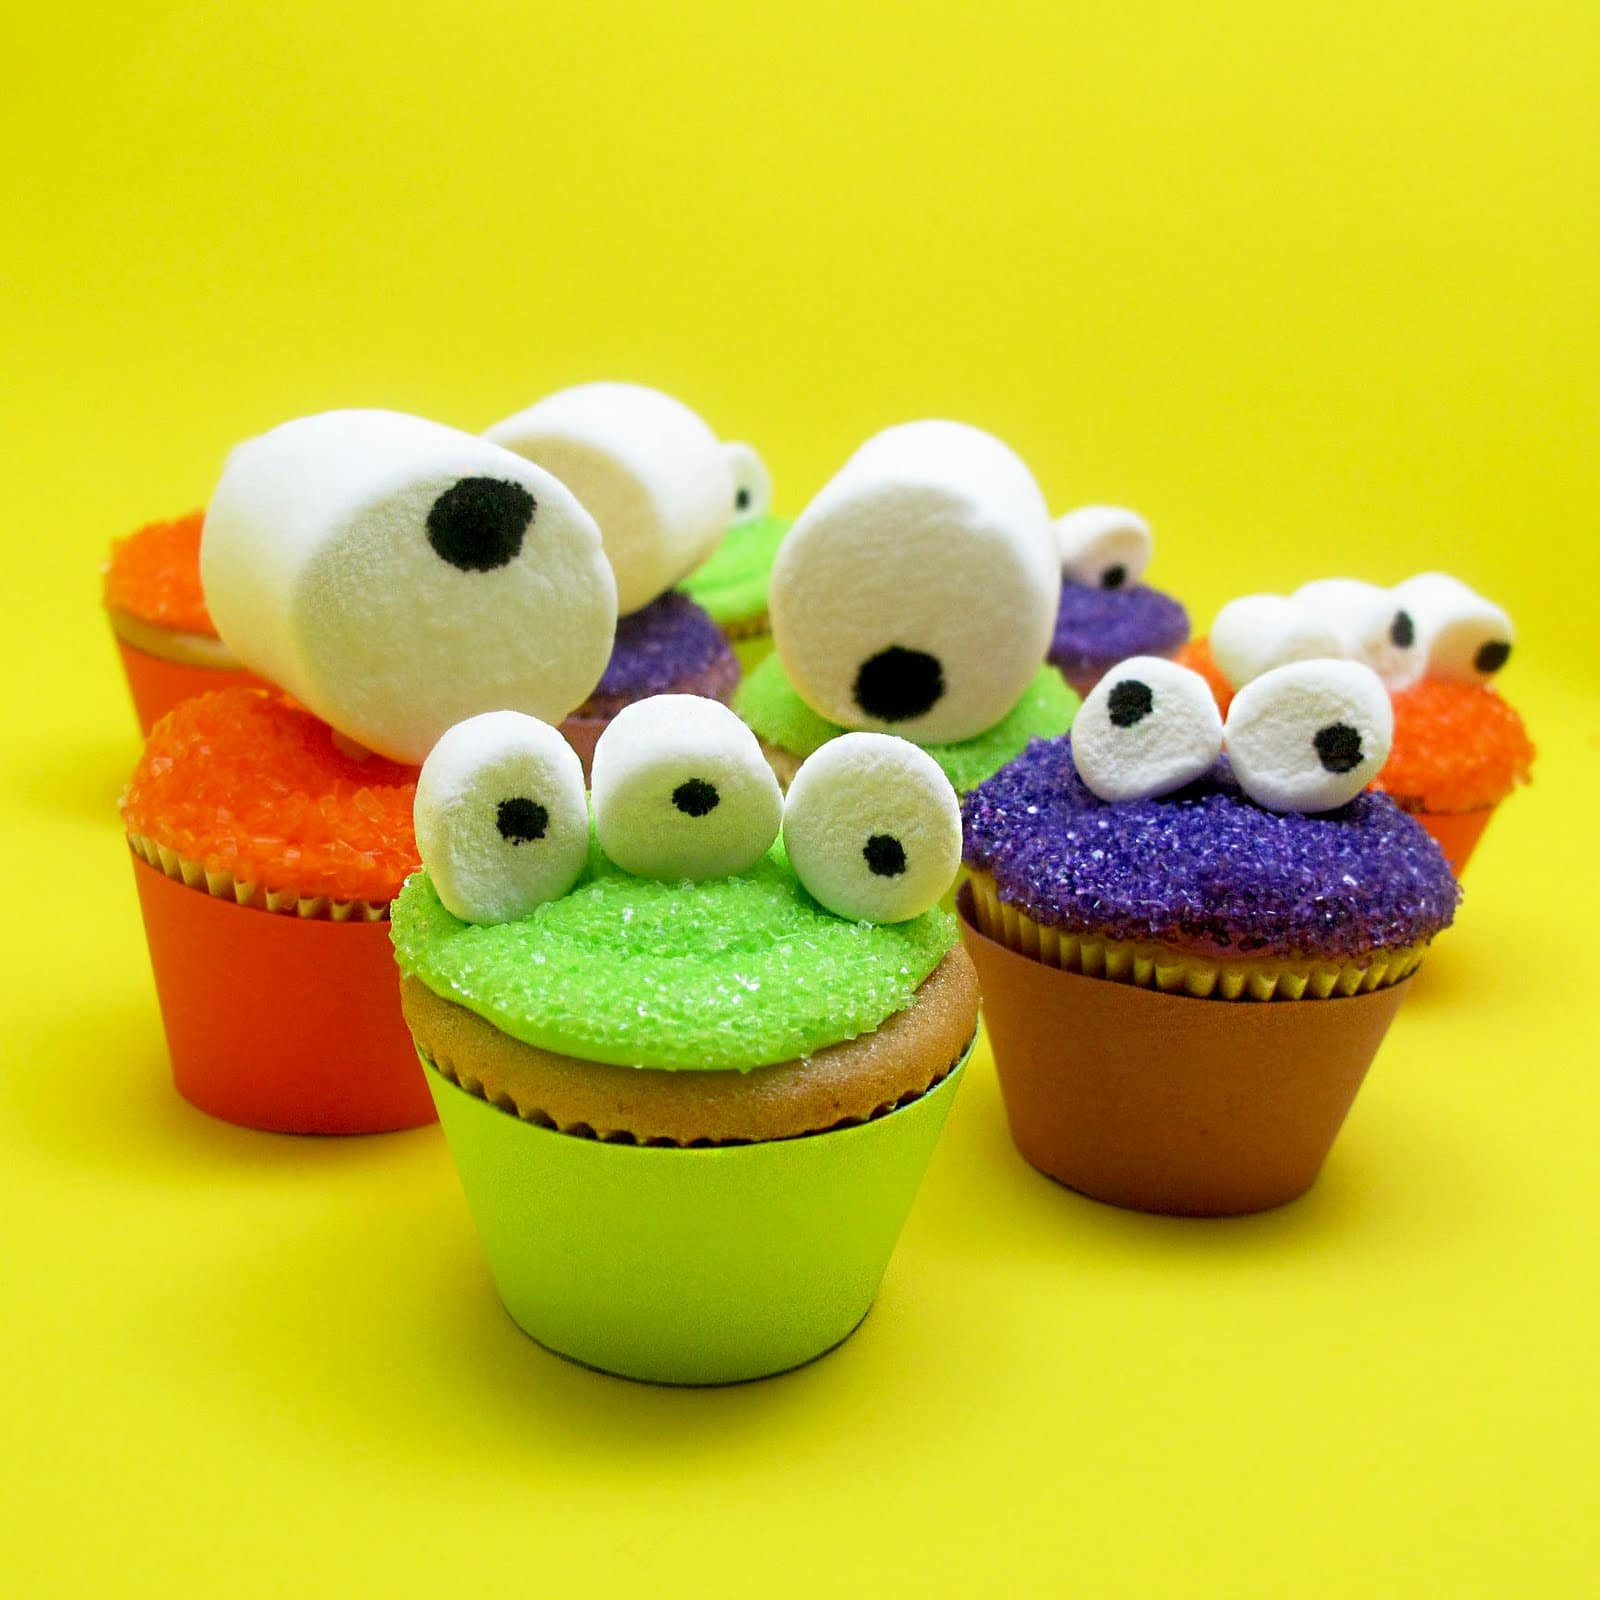 Halloween Monster Cupcakes  mini monster cupcakes for an easy Halloween treat idea